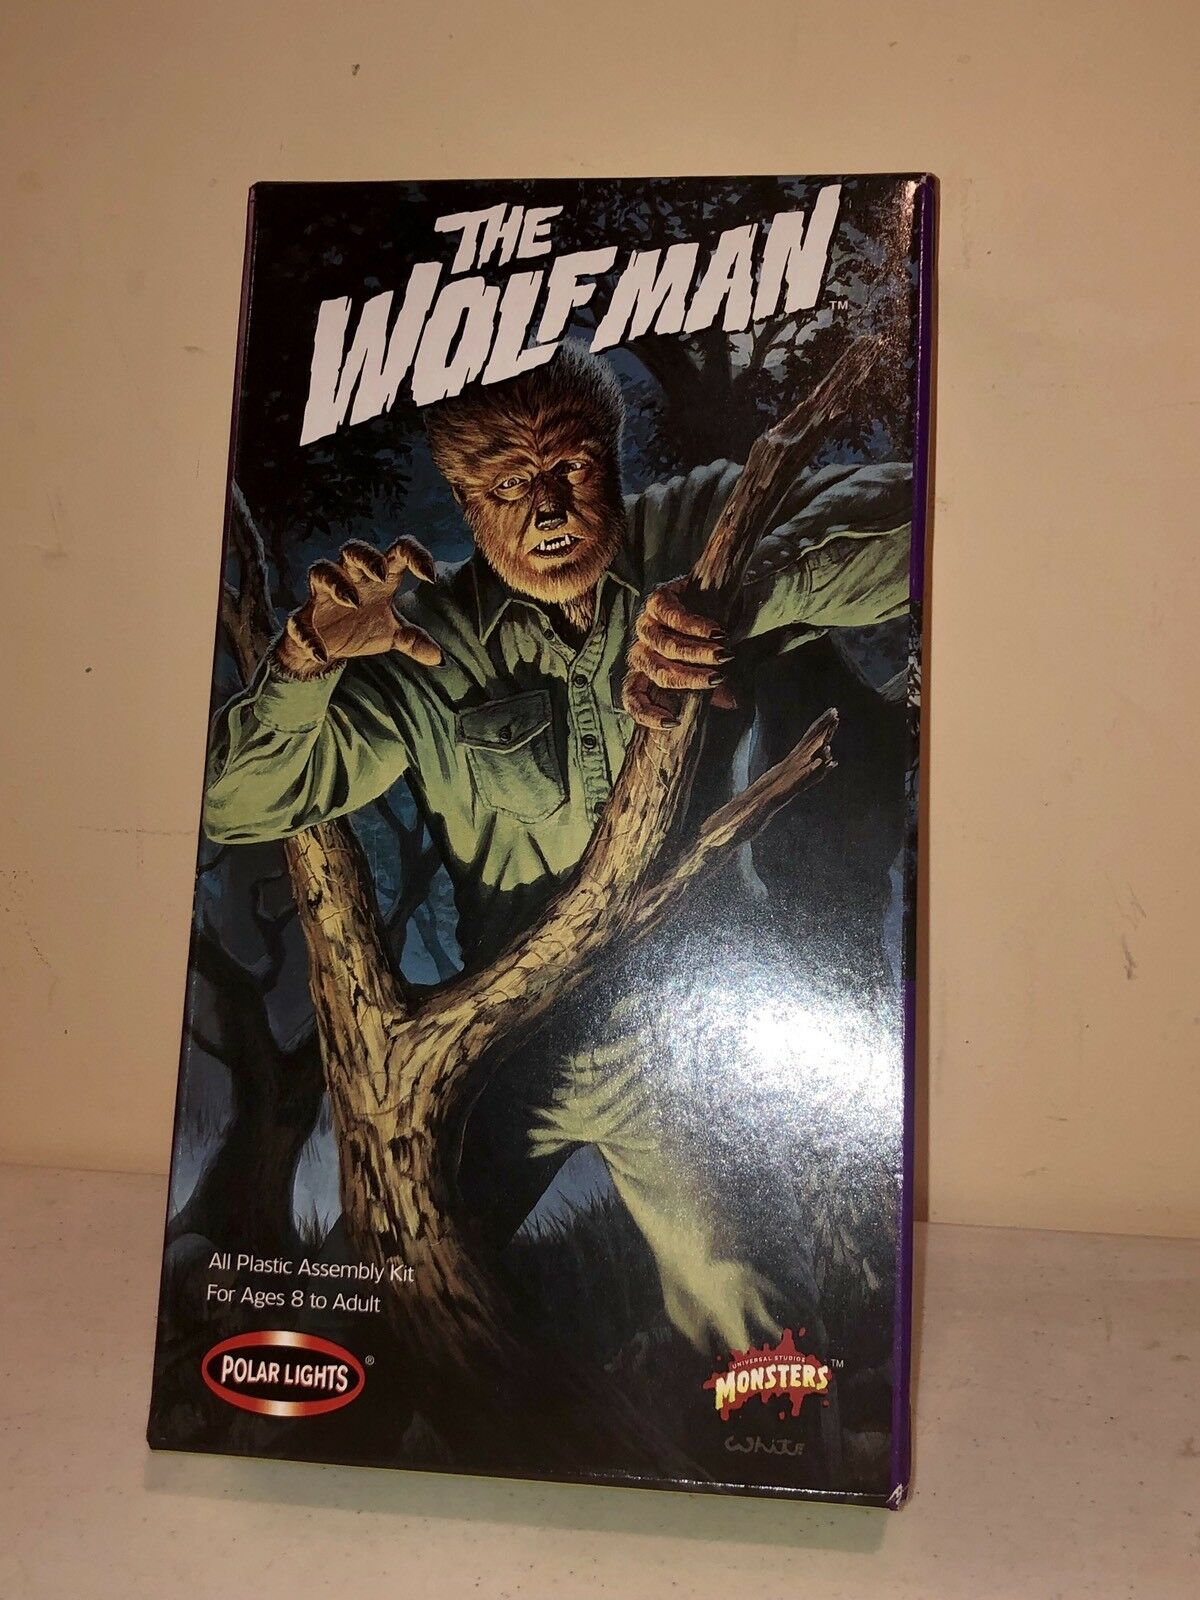 1998 THE WOLFMAN Polar Lights Model; New in opened box but bagged.